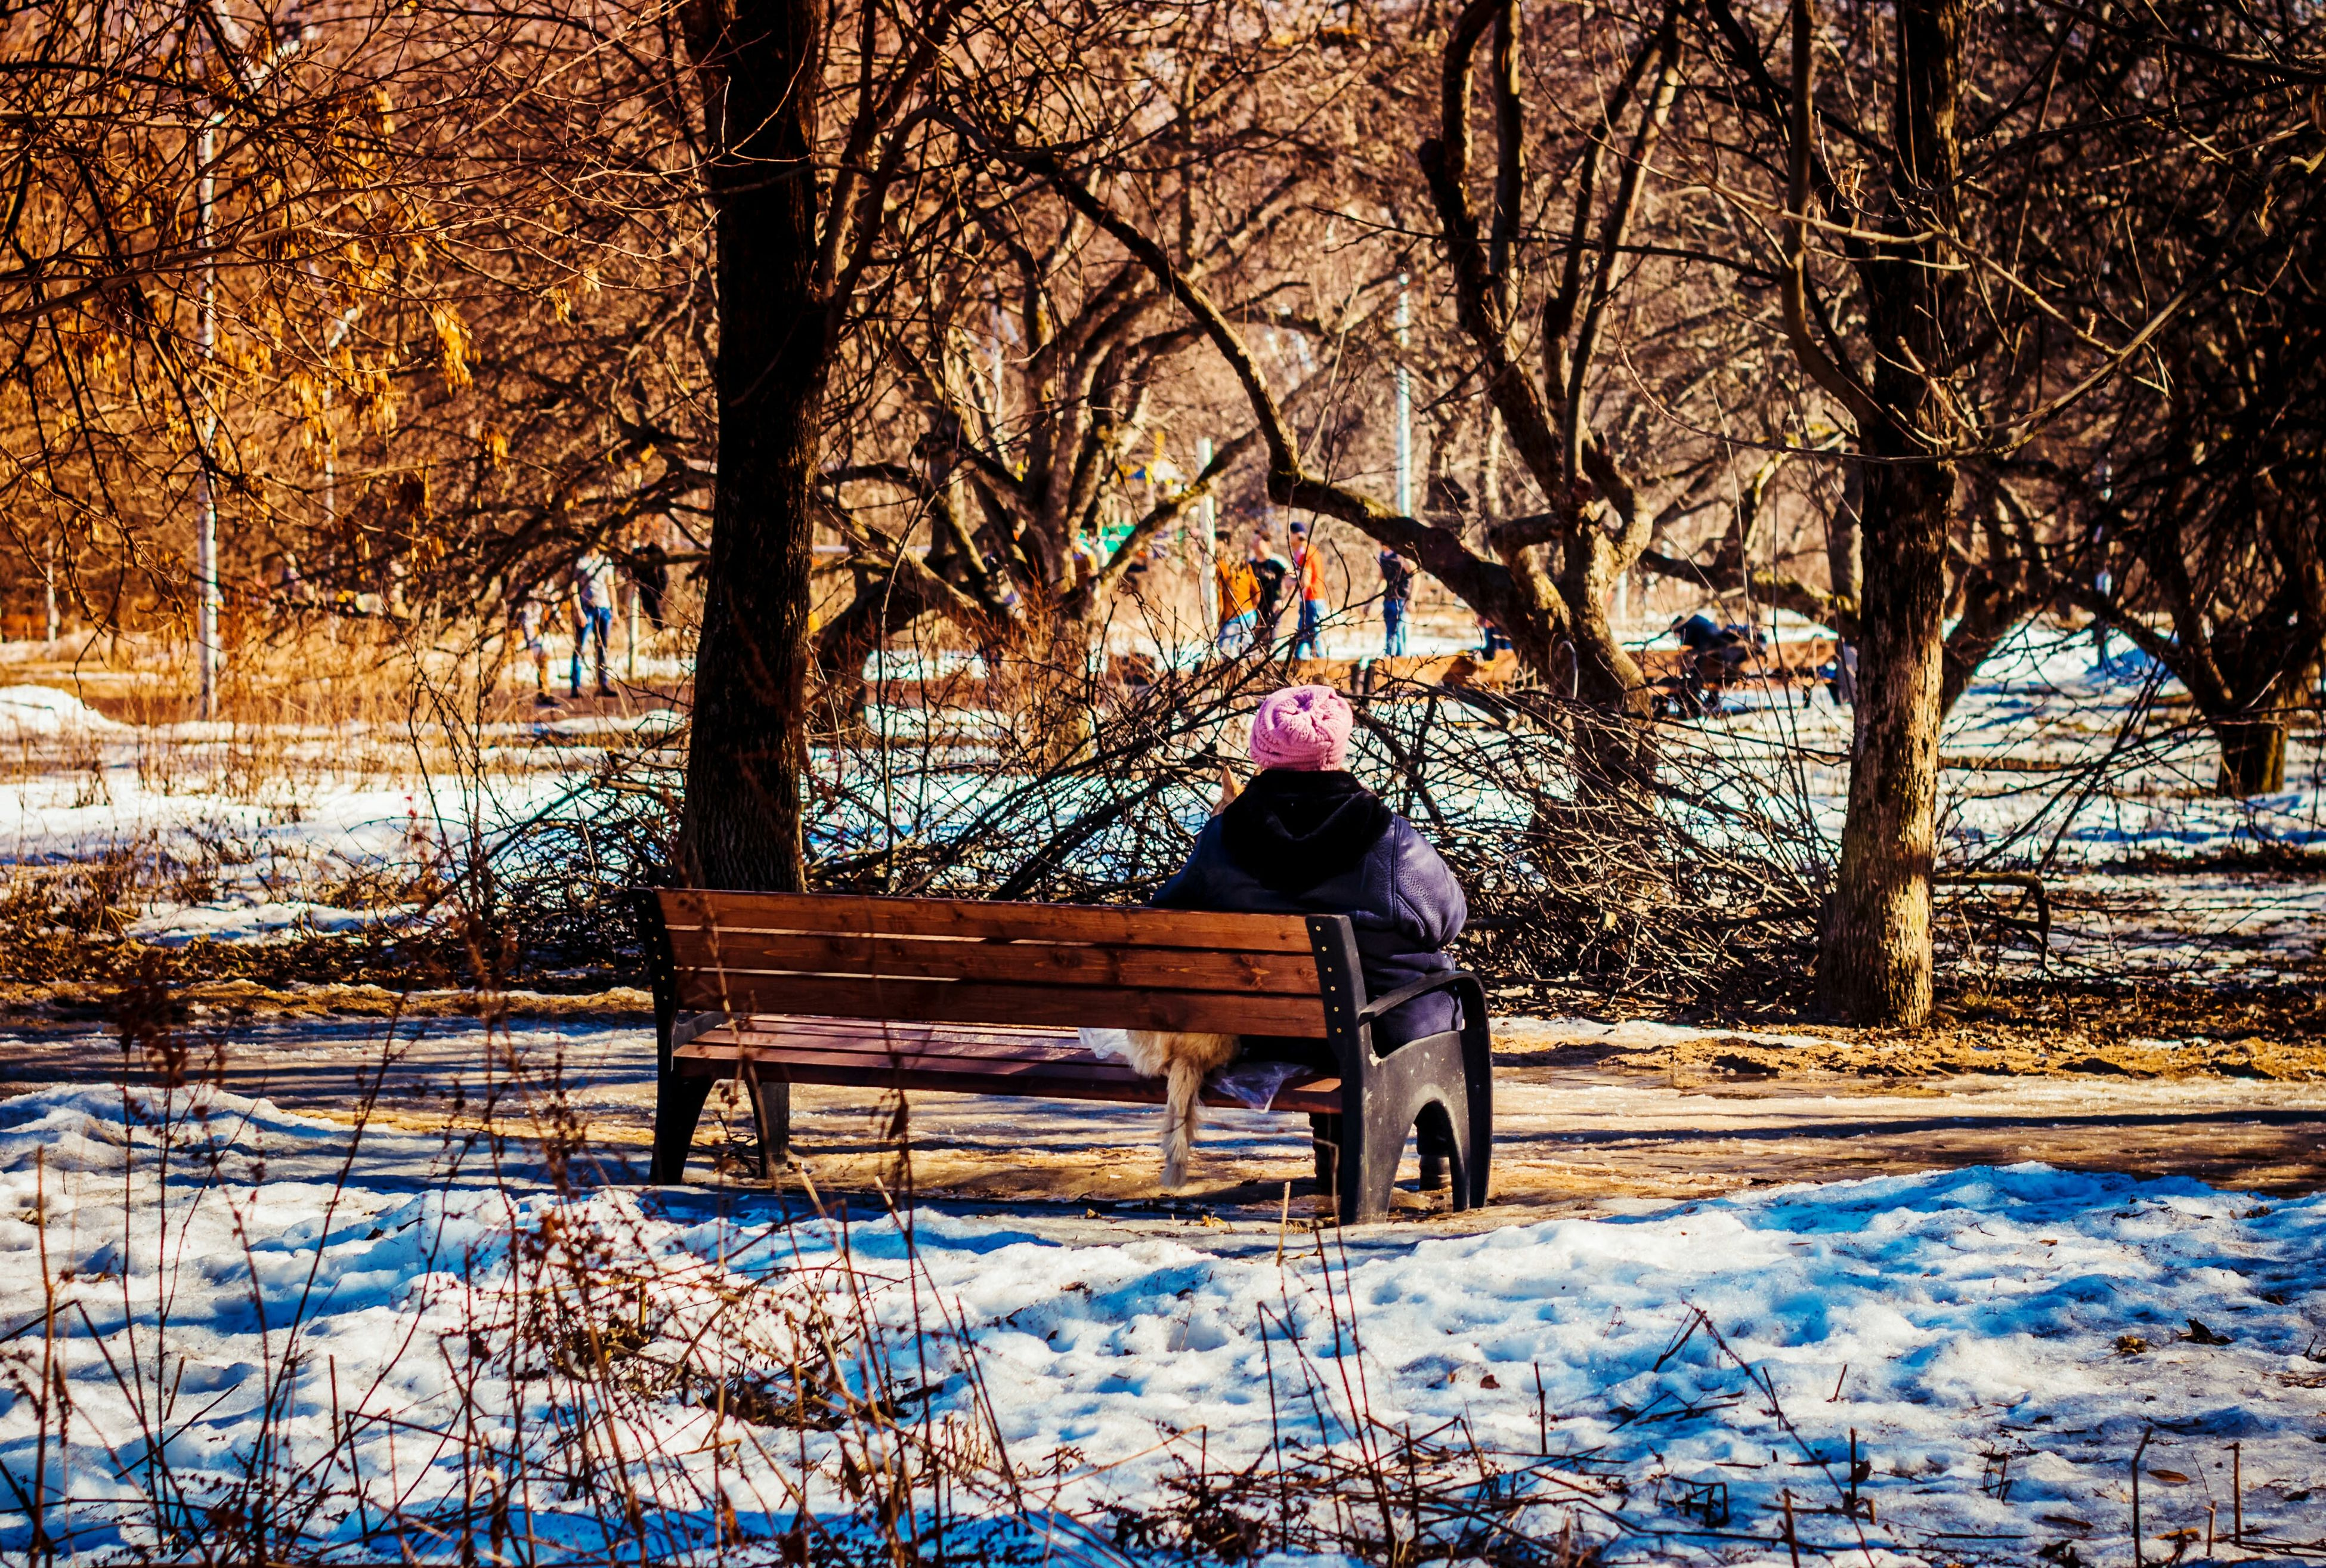 snow, winter, cold temperature, season, weather, bare tree, tree, covering, frozen, field, covered, warm clothing, nature, landscape, white color, full length, lifestyles, snowing